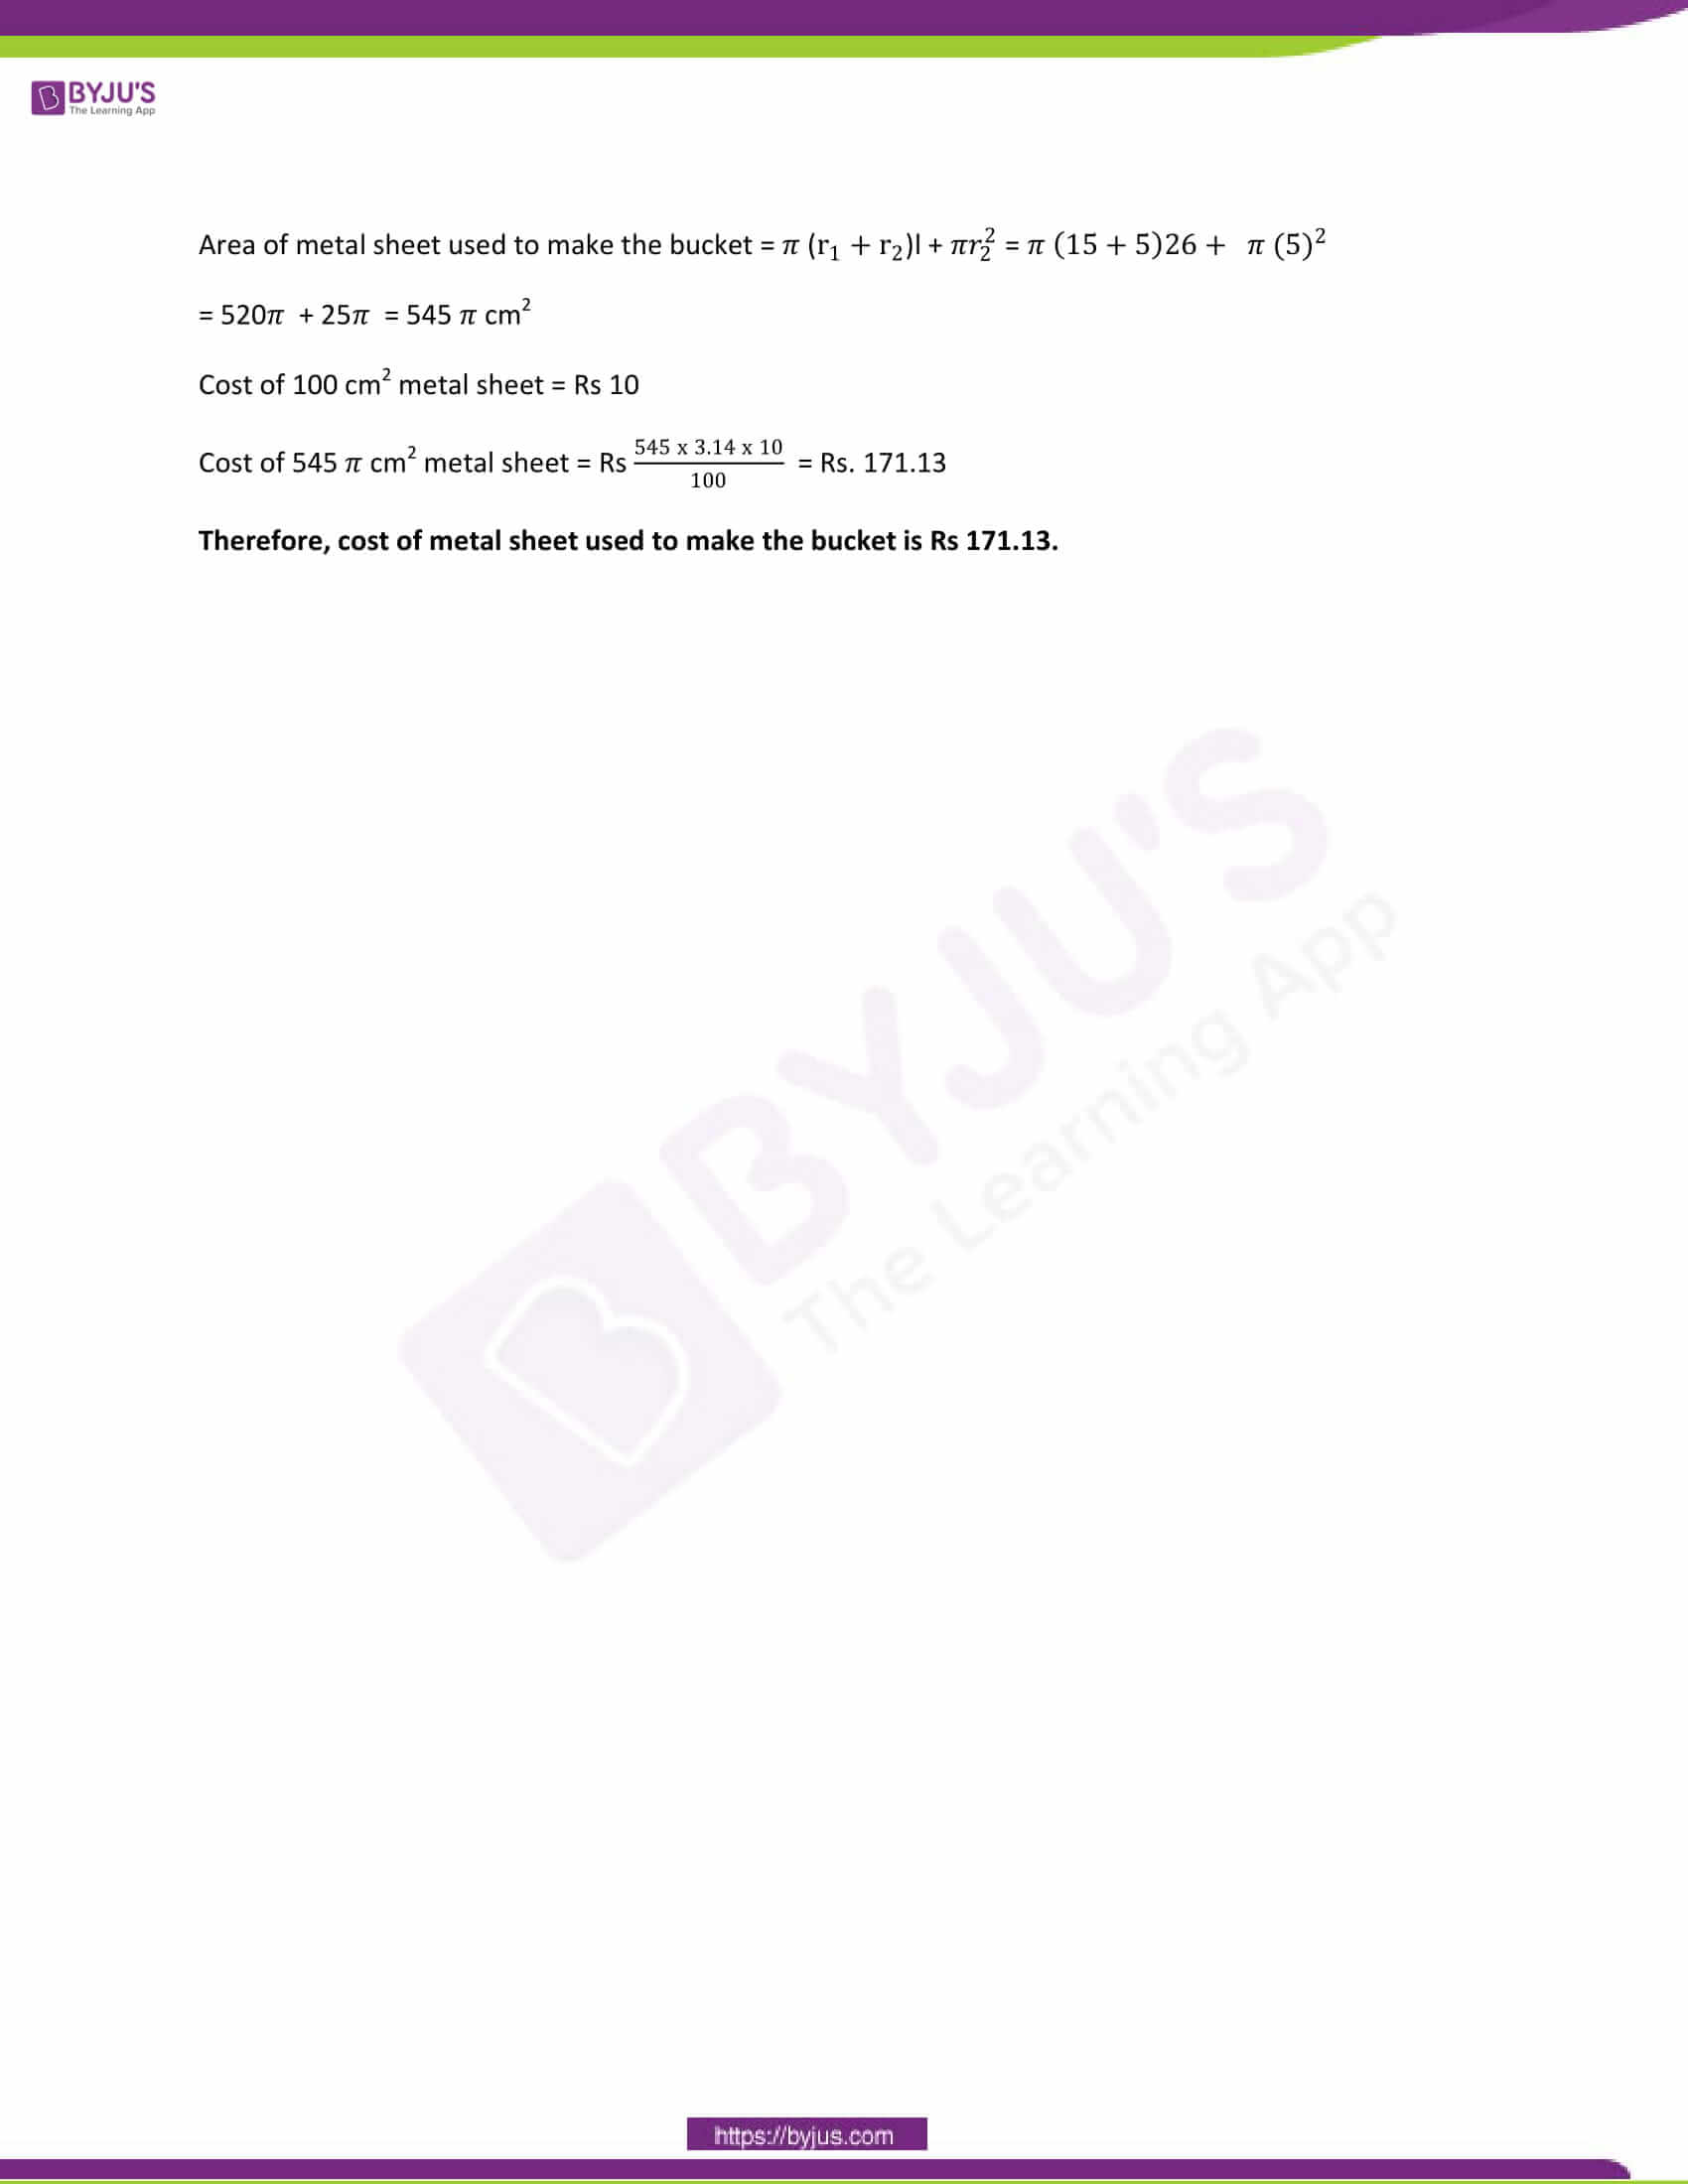 CBSE Class 10 Maths Papers Solution 2013 21